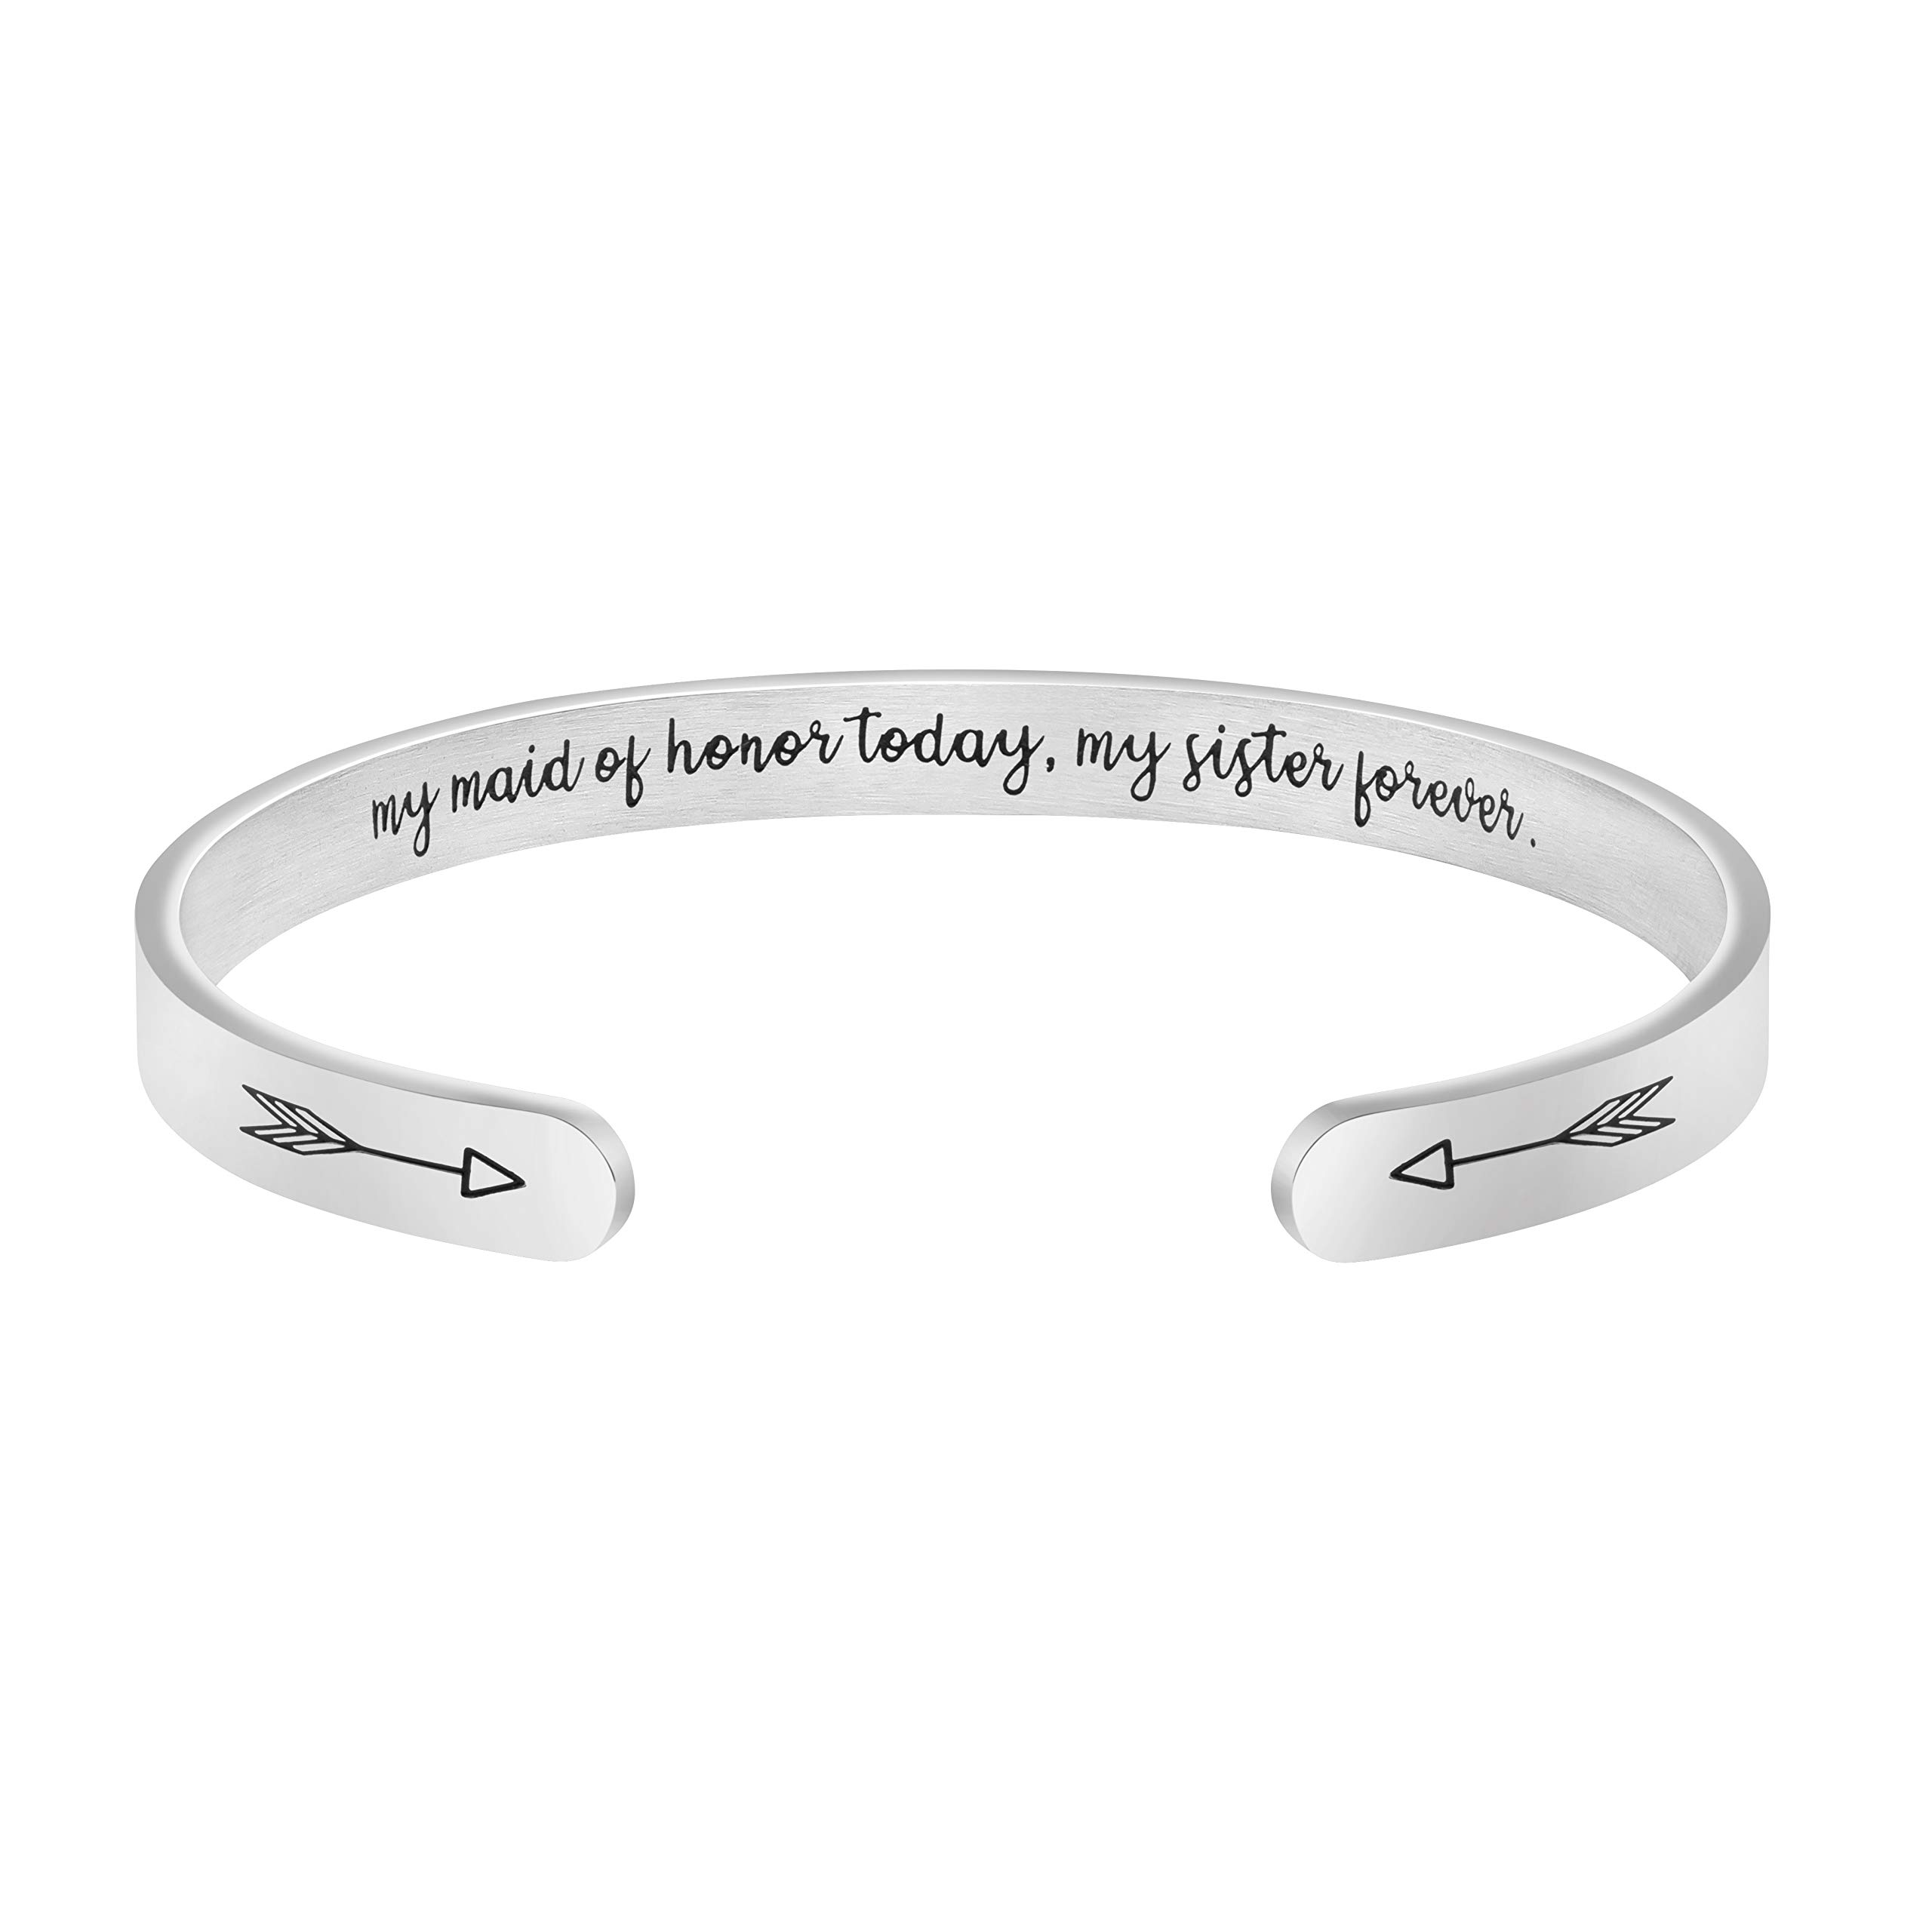 My Maid of Honor Today My Sister Forever Arrow Hidden Message Cuff Bracelet Bridesmaid Proposal Gift Wedding Jewelry